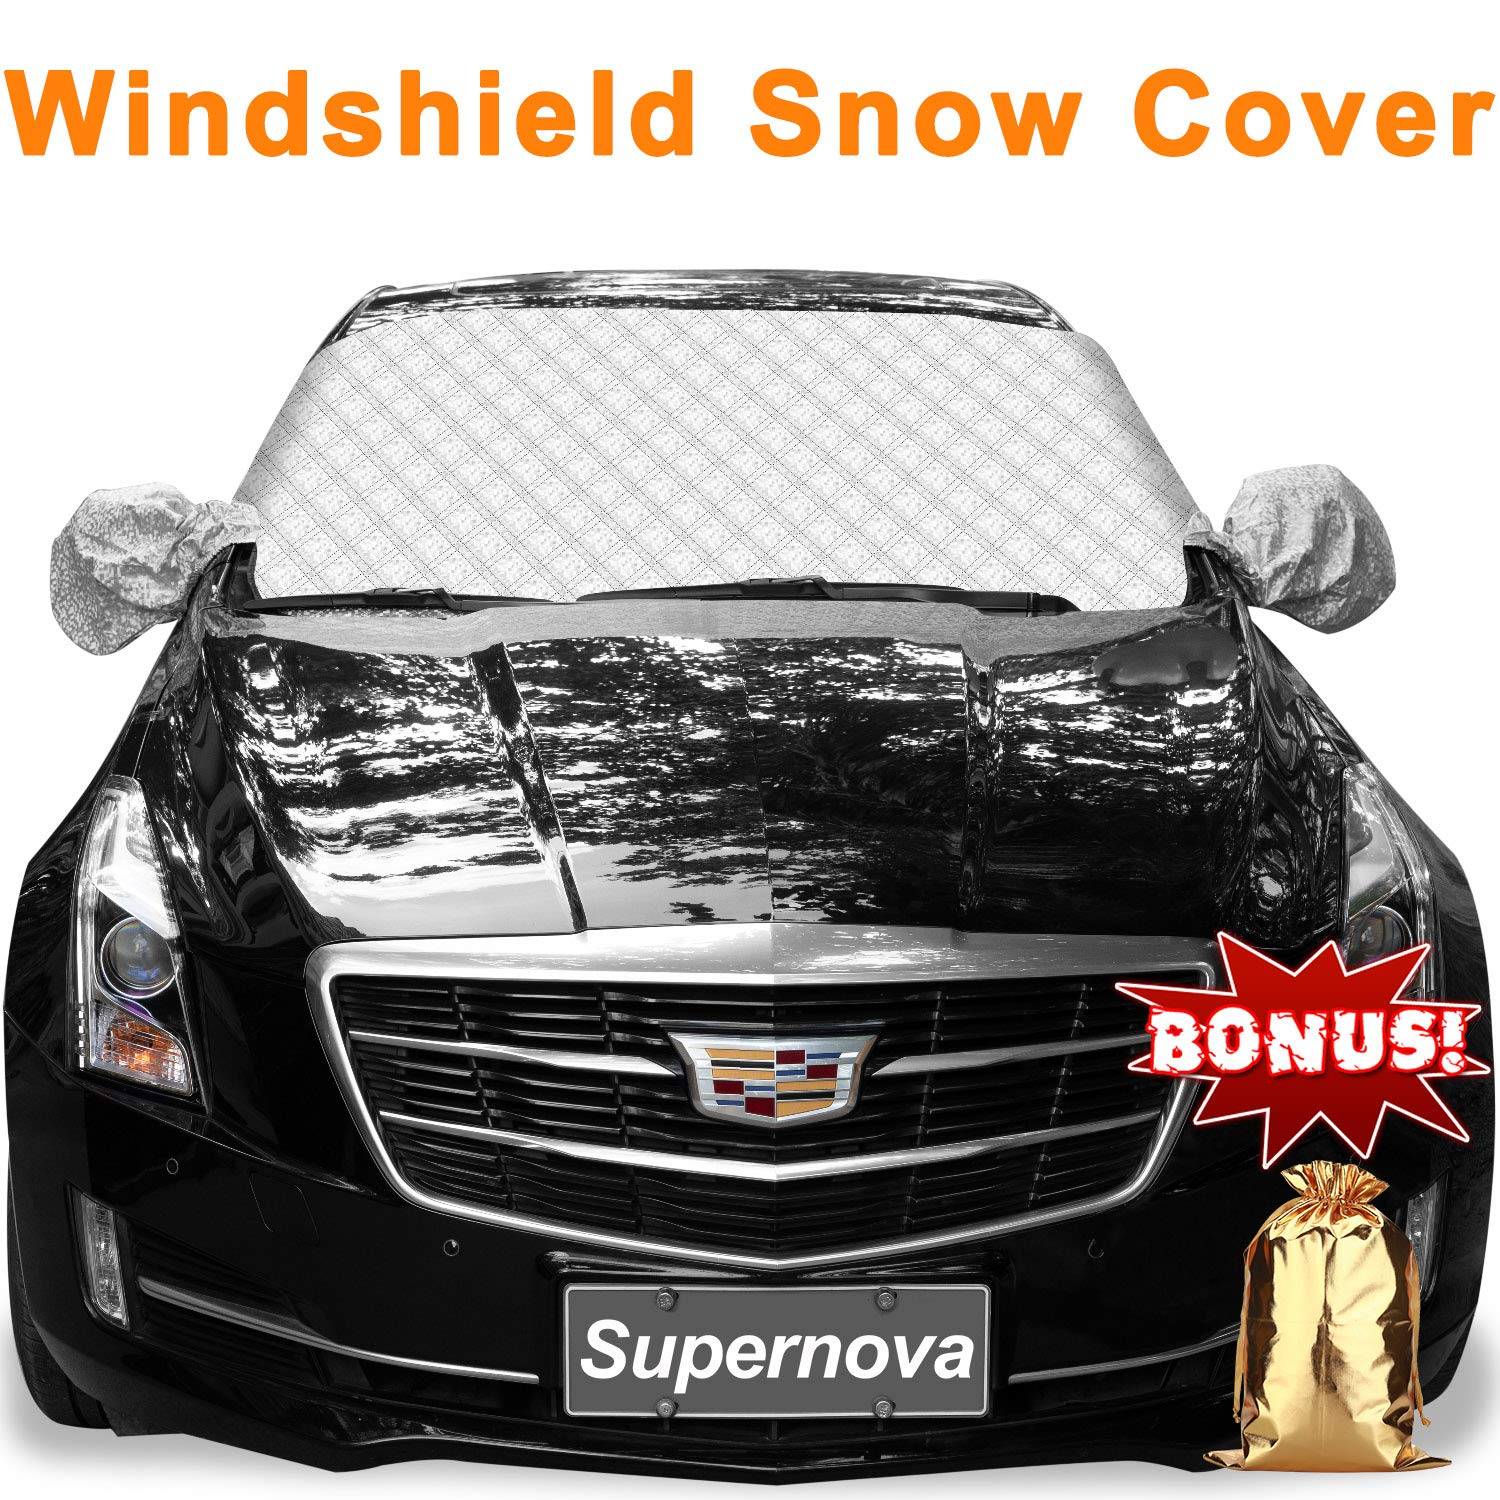 Supernova Car Windshield and Side Mirror Cover for Snow and Ice Guard & Sun Shade Protector, Fits for Compact Cars, Sedans, Small Crossovers & Small SUVs - 56'(W) X 36'(H) (Standard-size) Small Crossovers & Small SUVs - 56(W) X 36(H) (Standard-size)